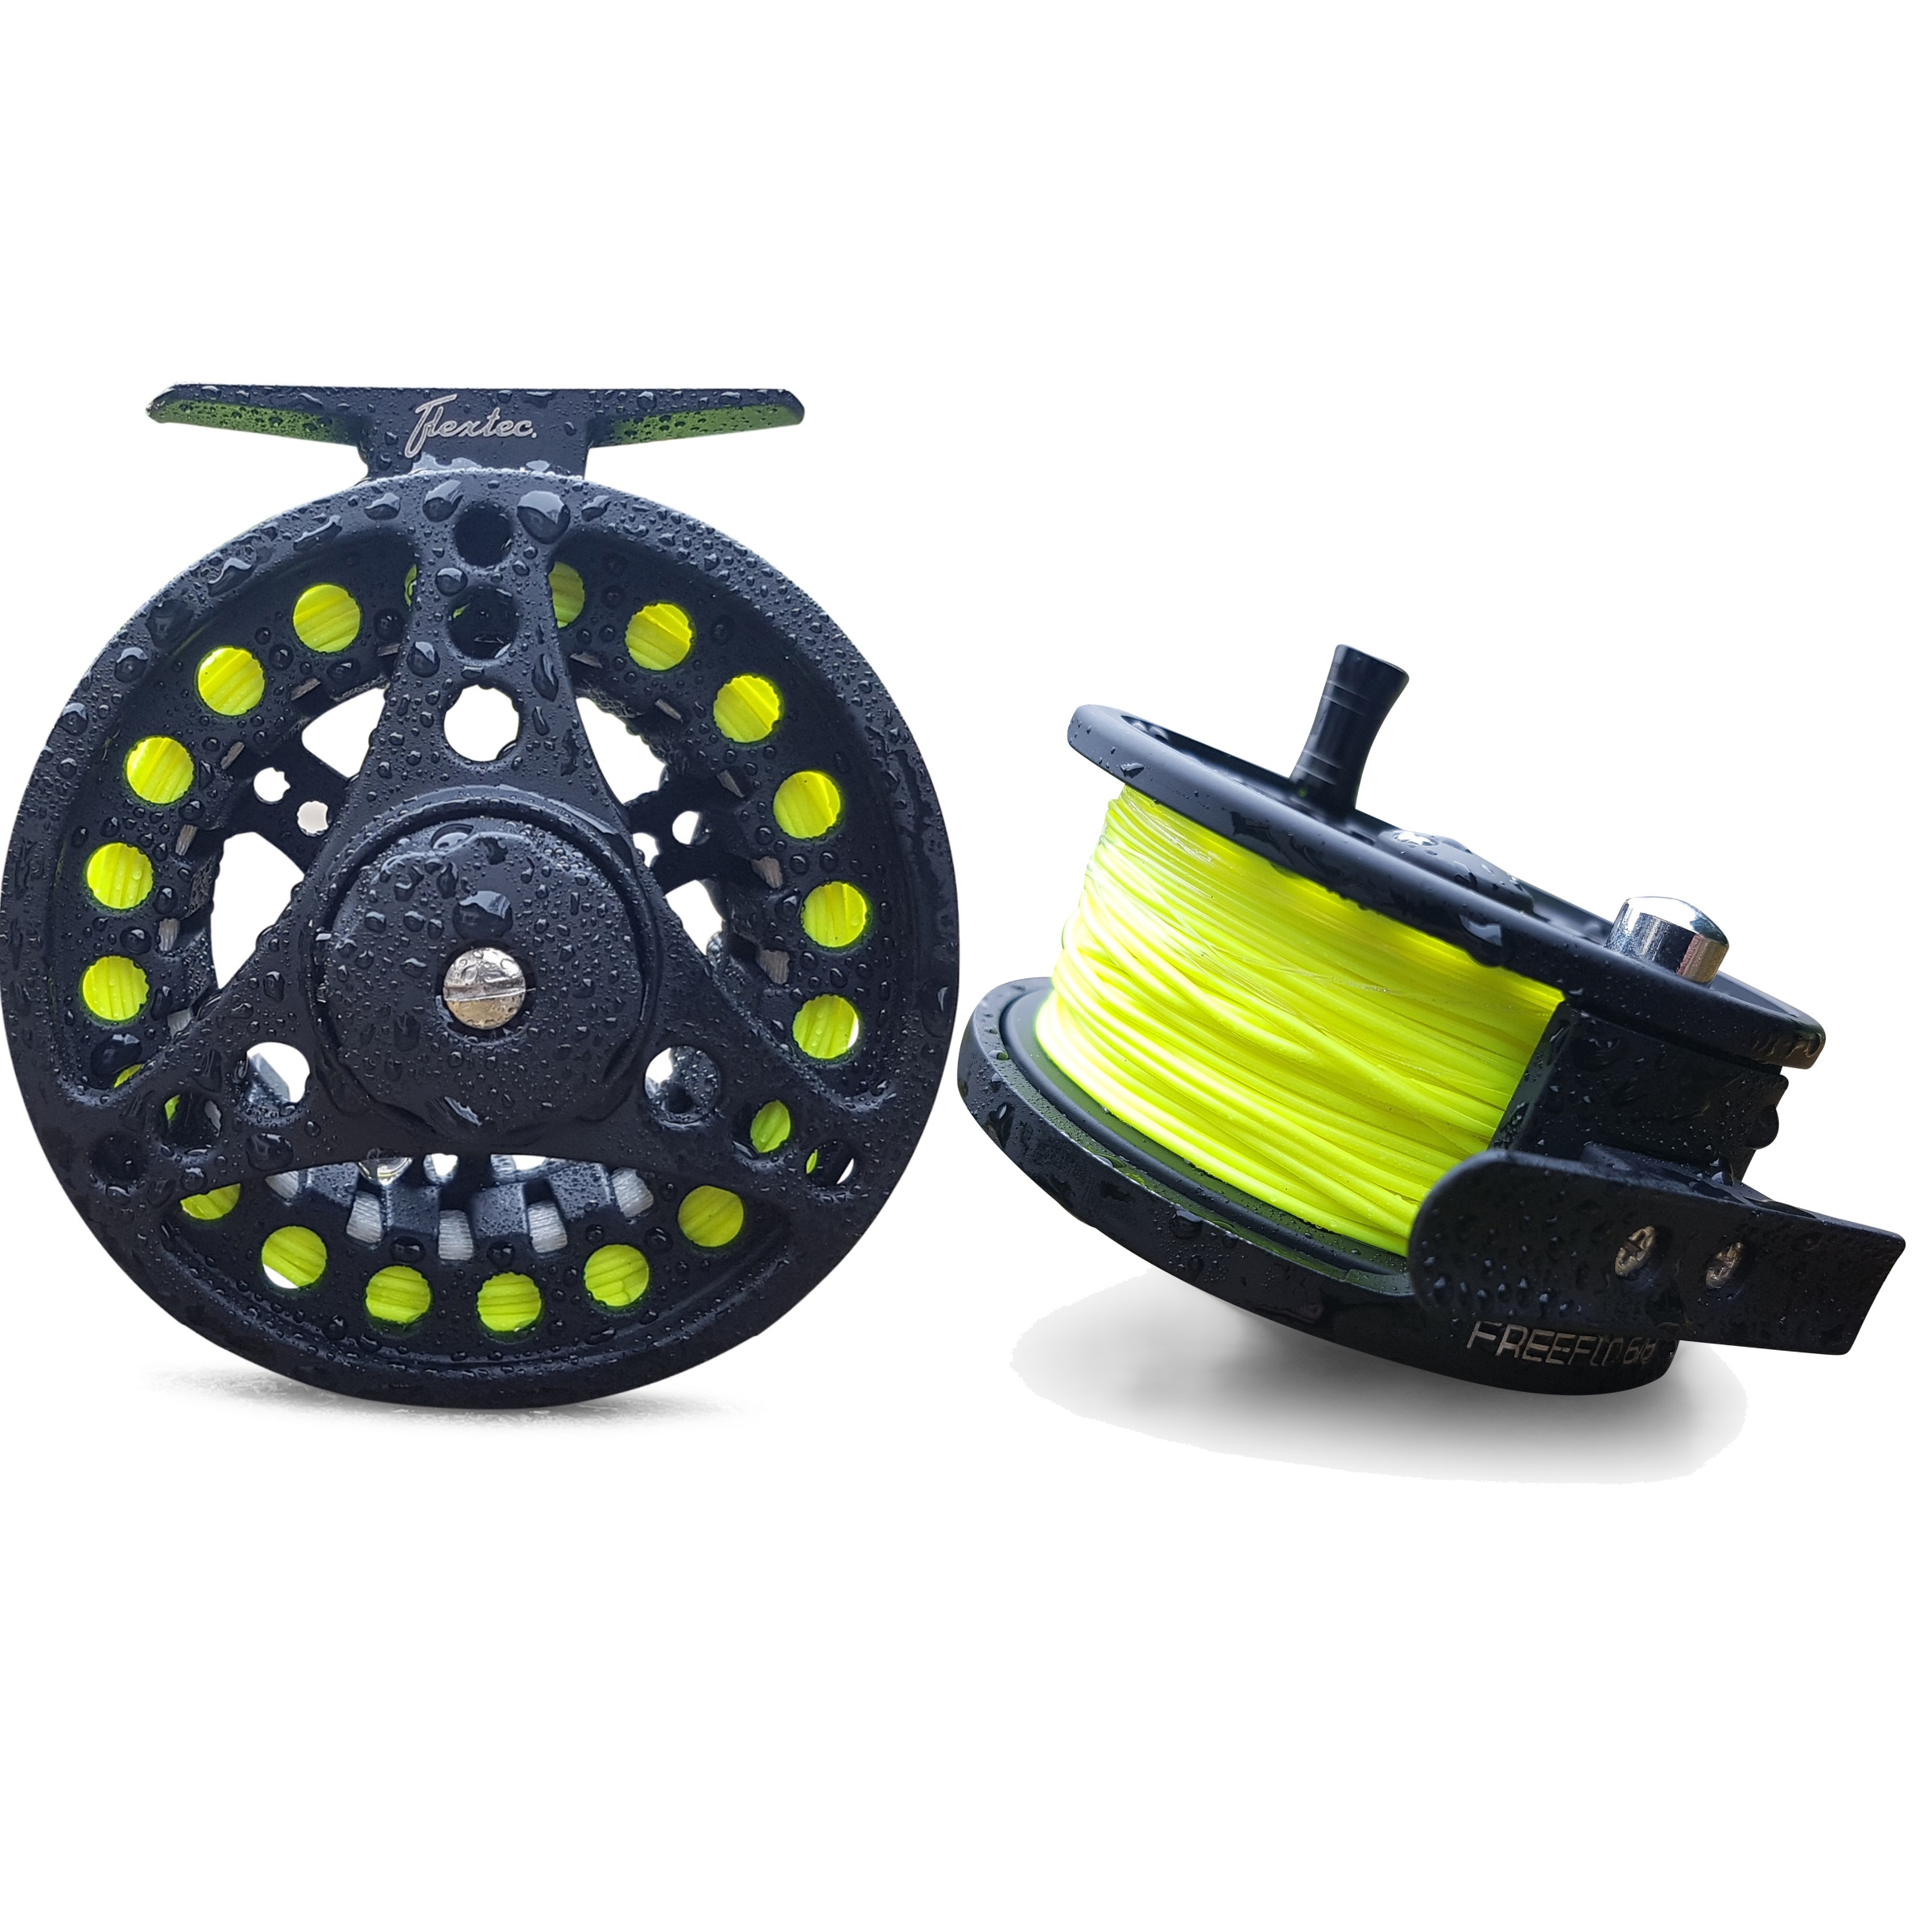 Flextec-Carbon-Fibre-Fly-Fishing-Rod-kit-with-Fly-Reel-Floating-Line-All-Sizes miniatuur 7